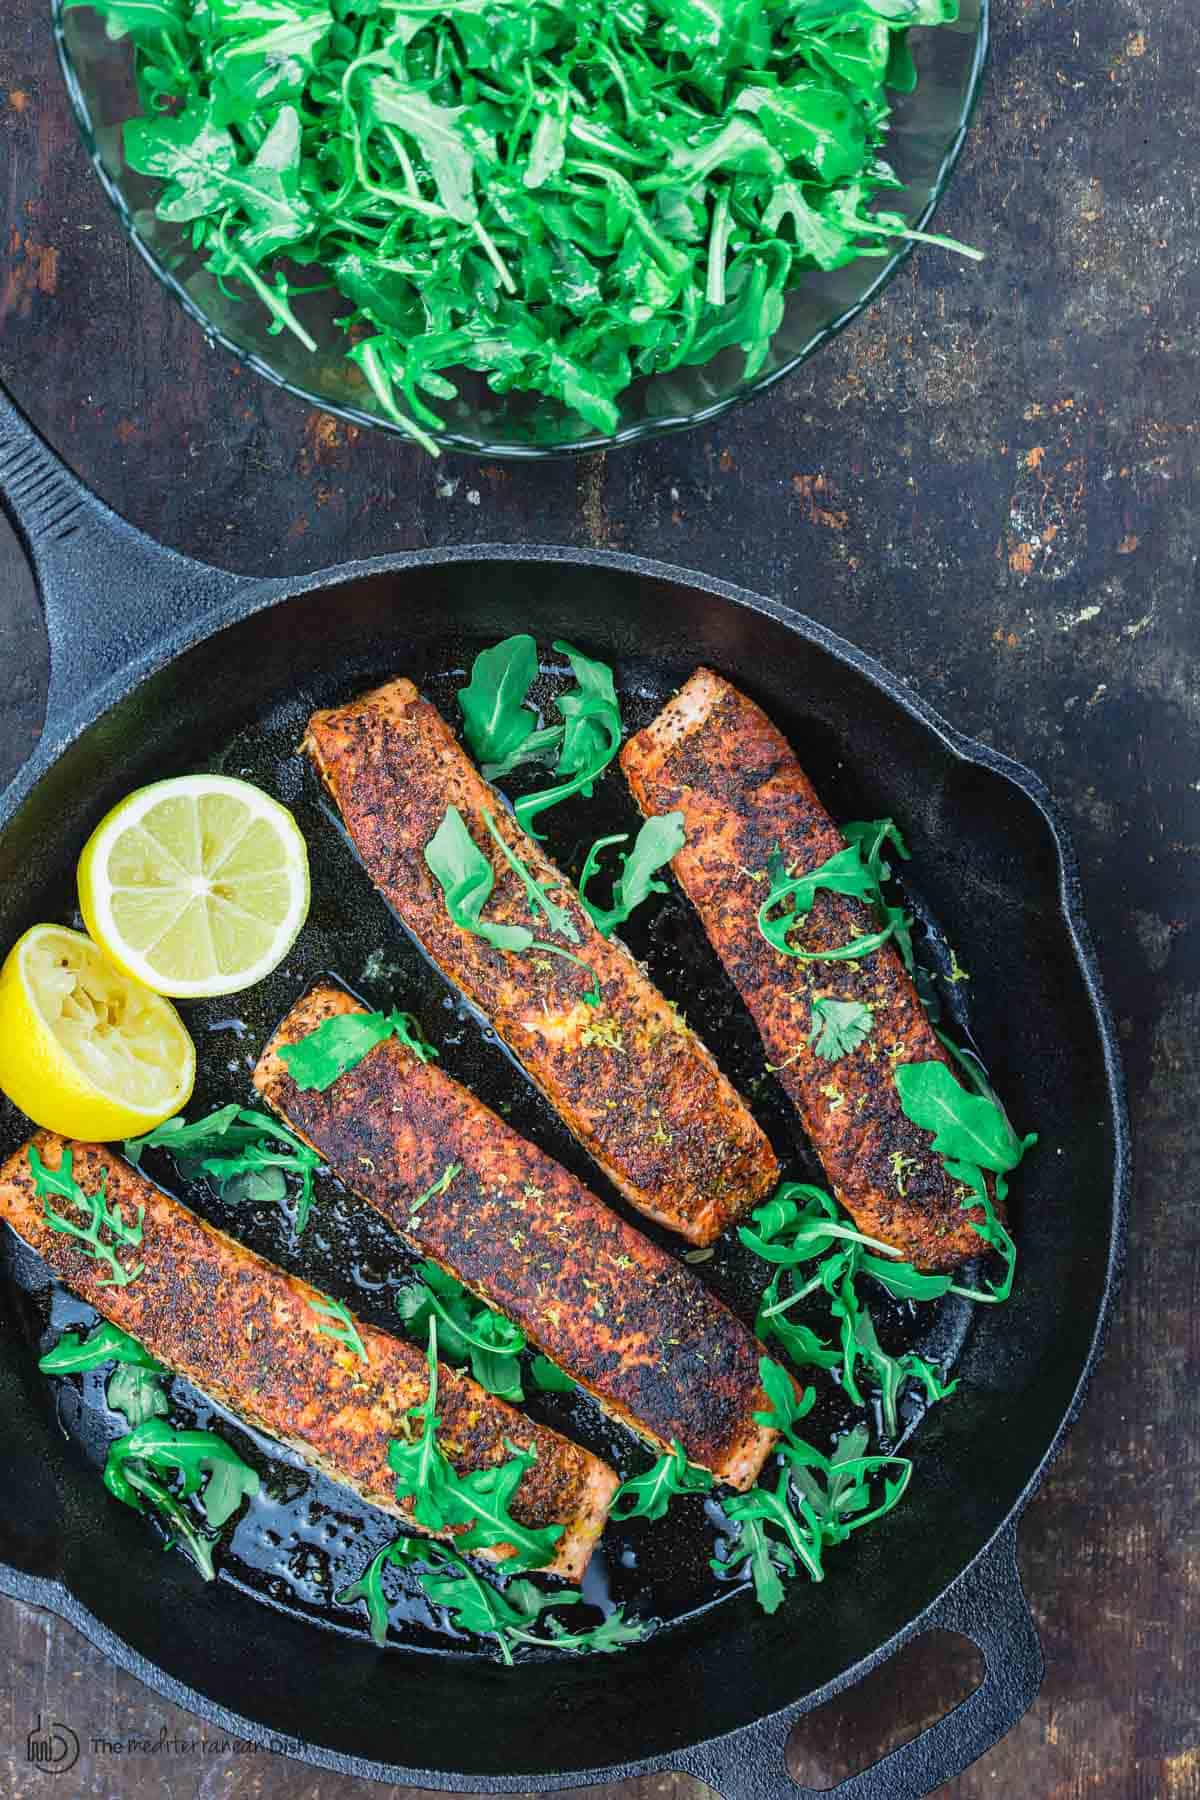 Pan Seared Salmon with a Side of Arugula Salad